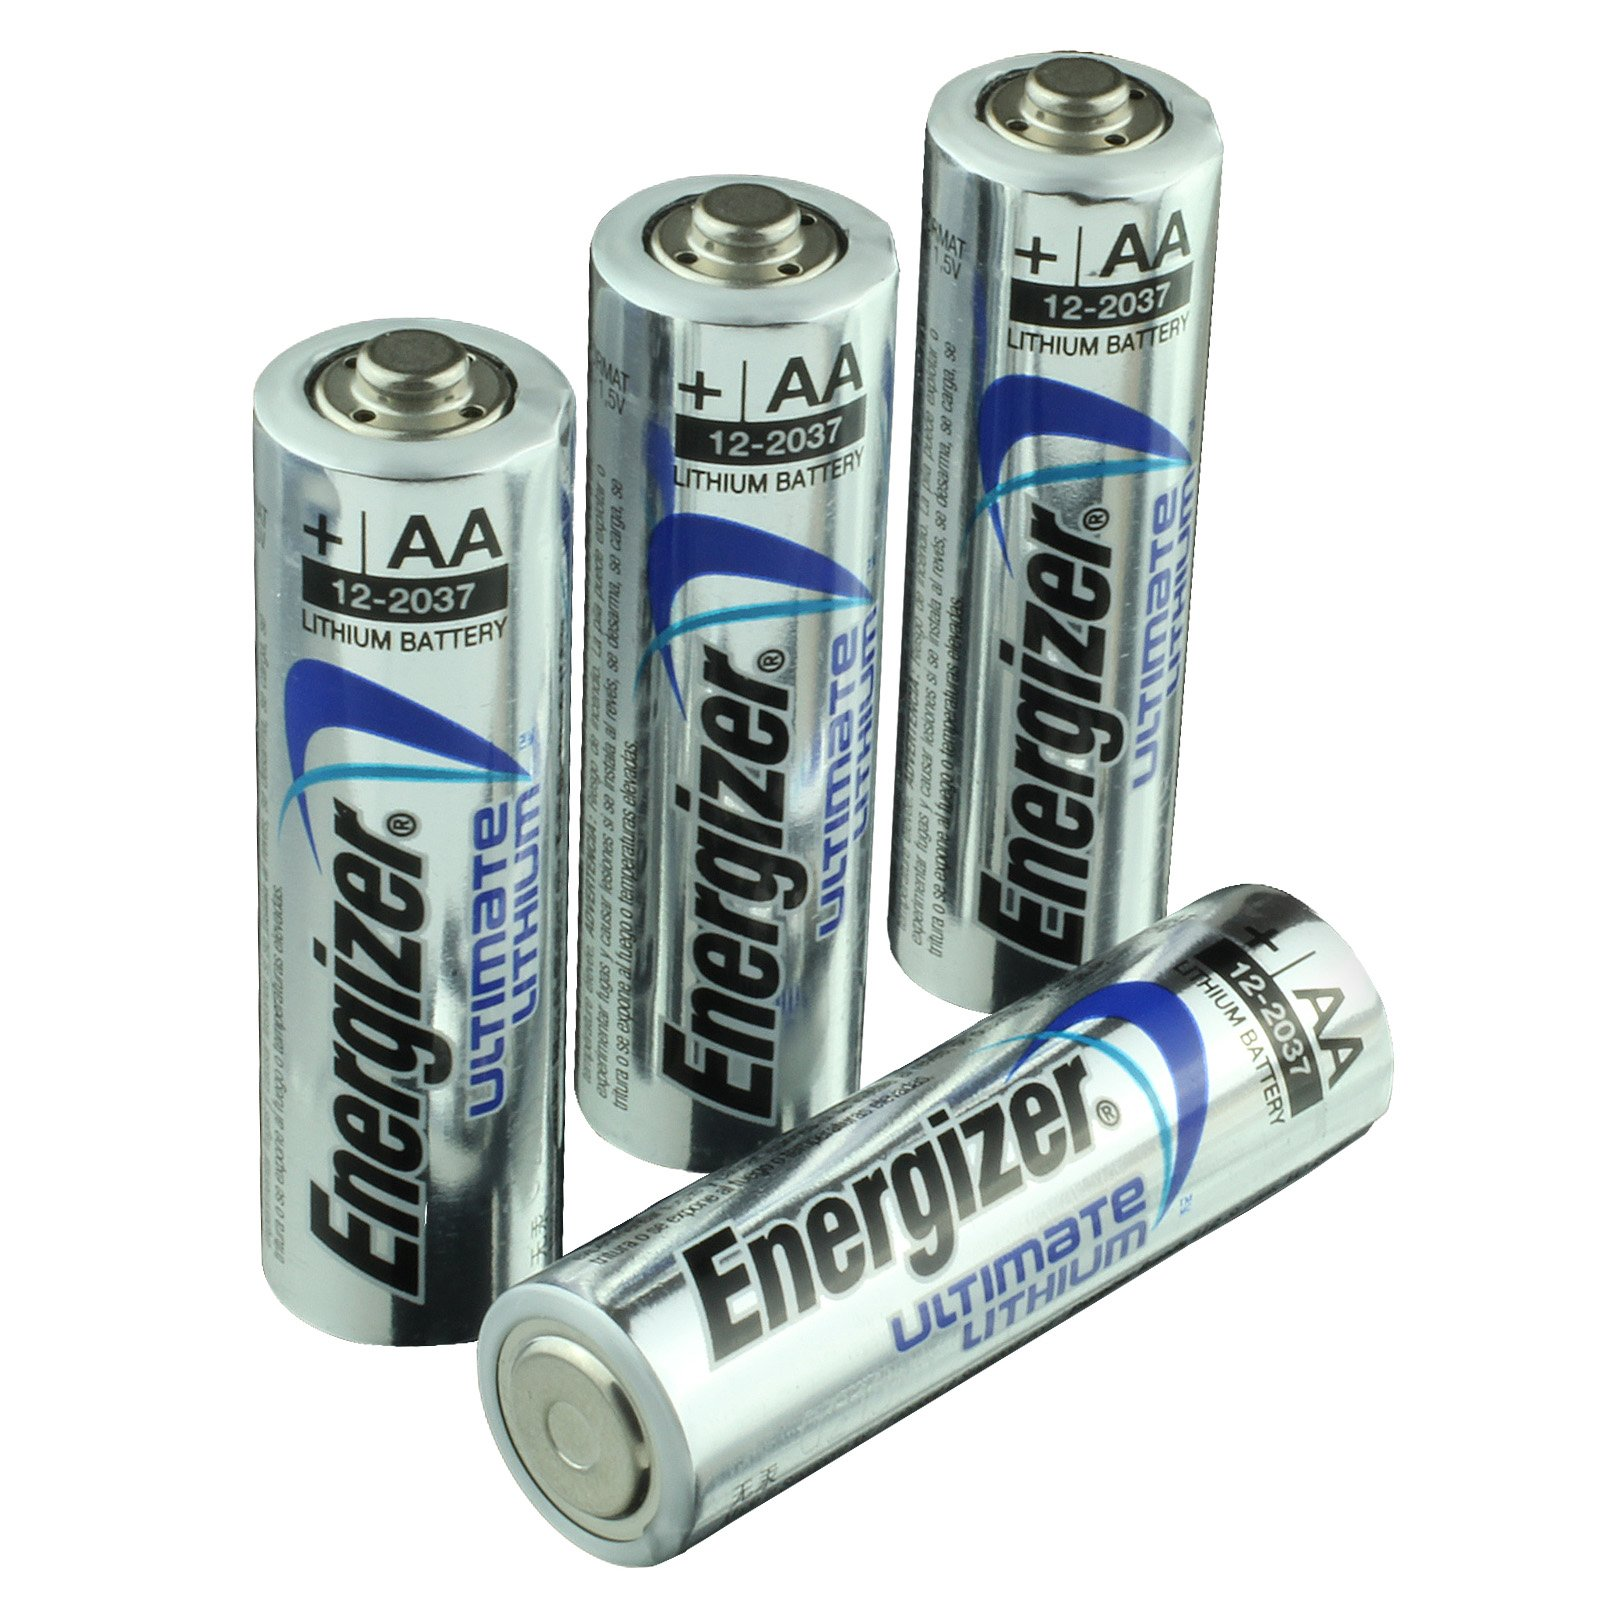 Energizer Aa Lithium Batteries 4 Pack Free Shipping